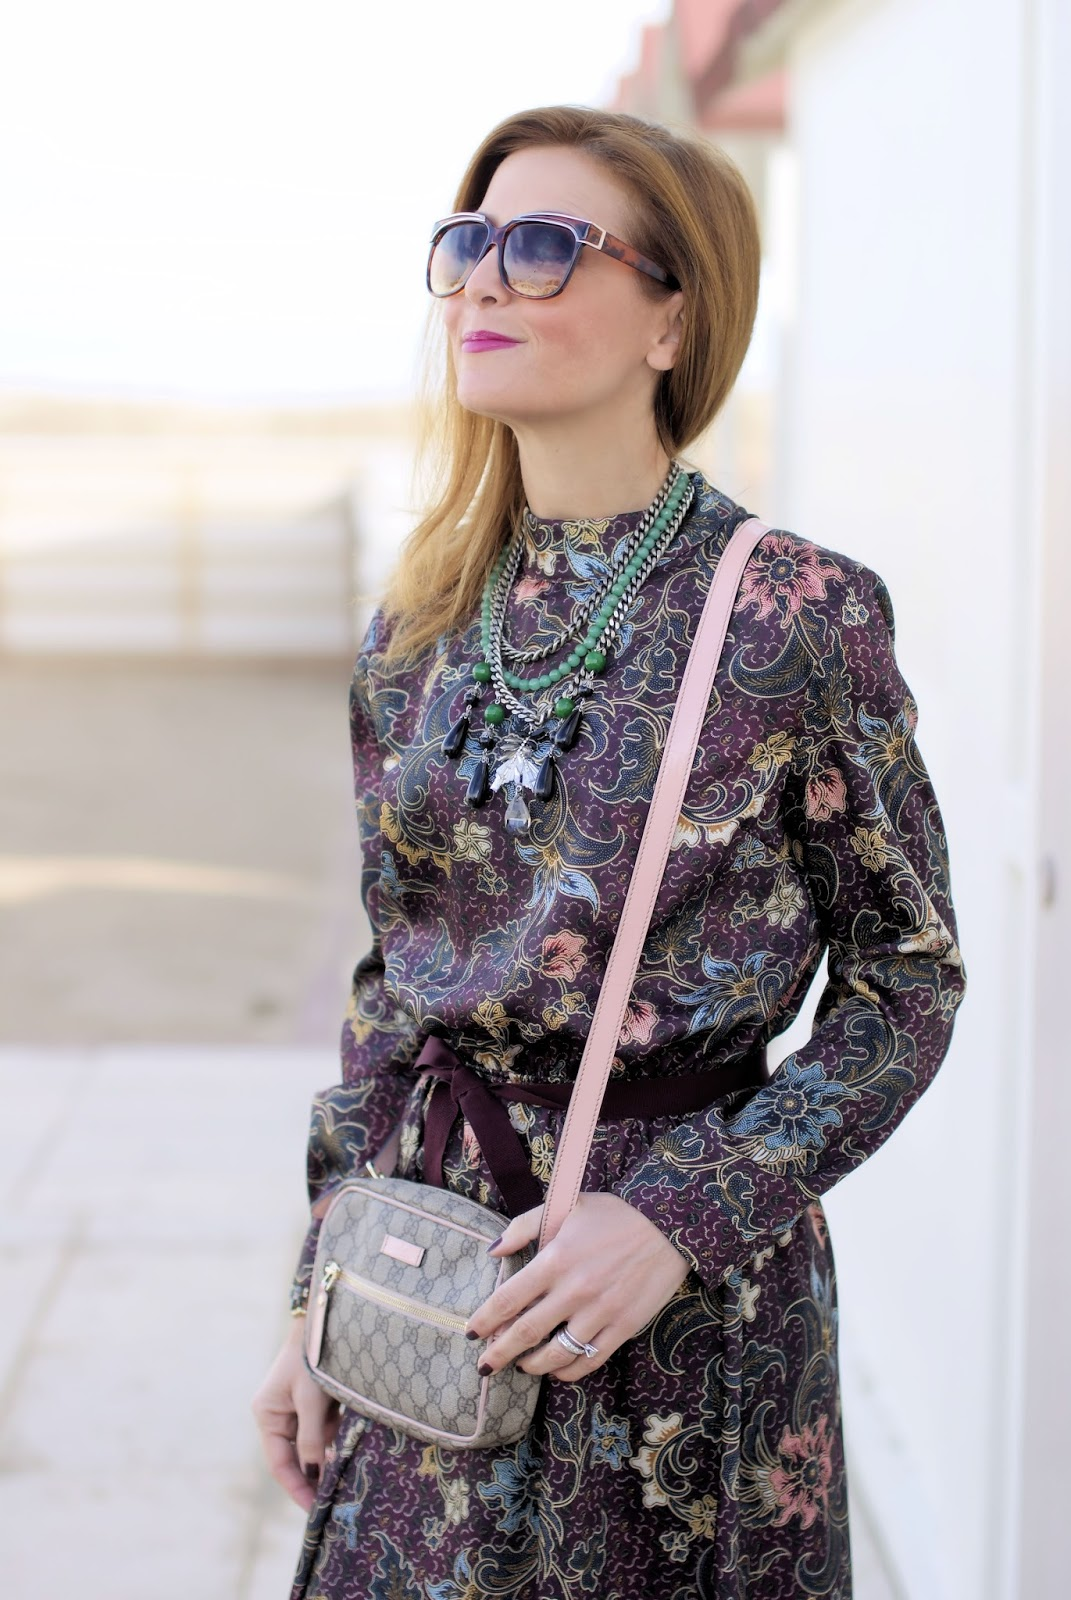 70s style floral dress and Gucci bag on Fashion and Cookies fashion blog, fashion blogger style